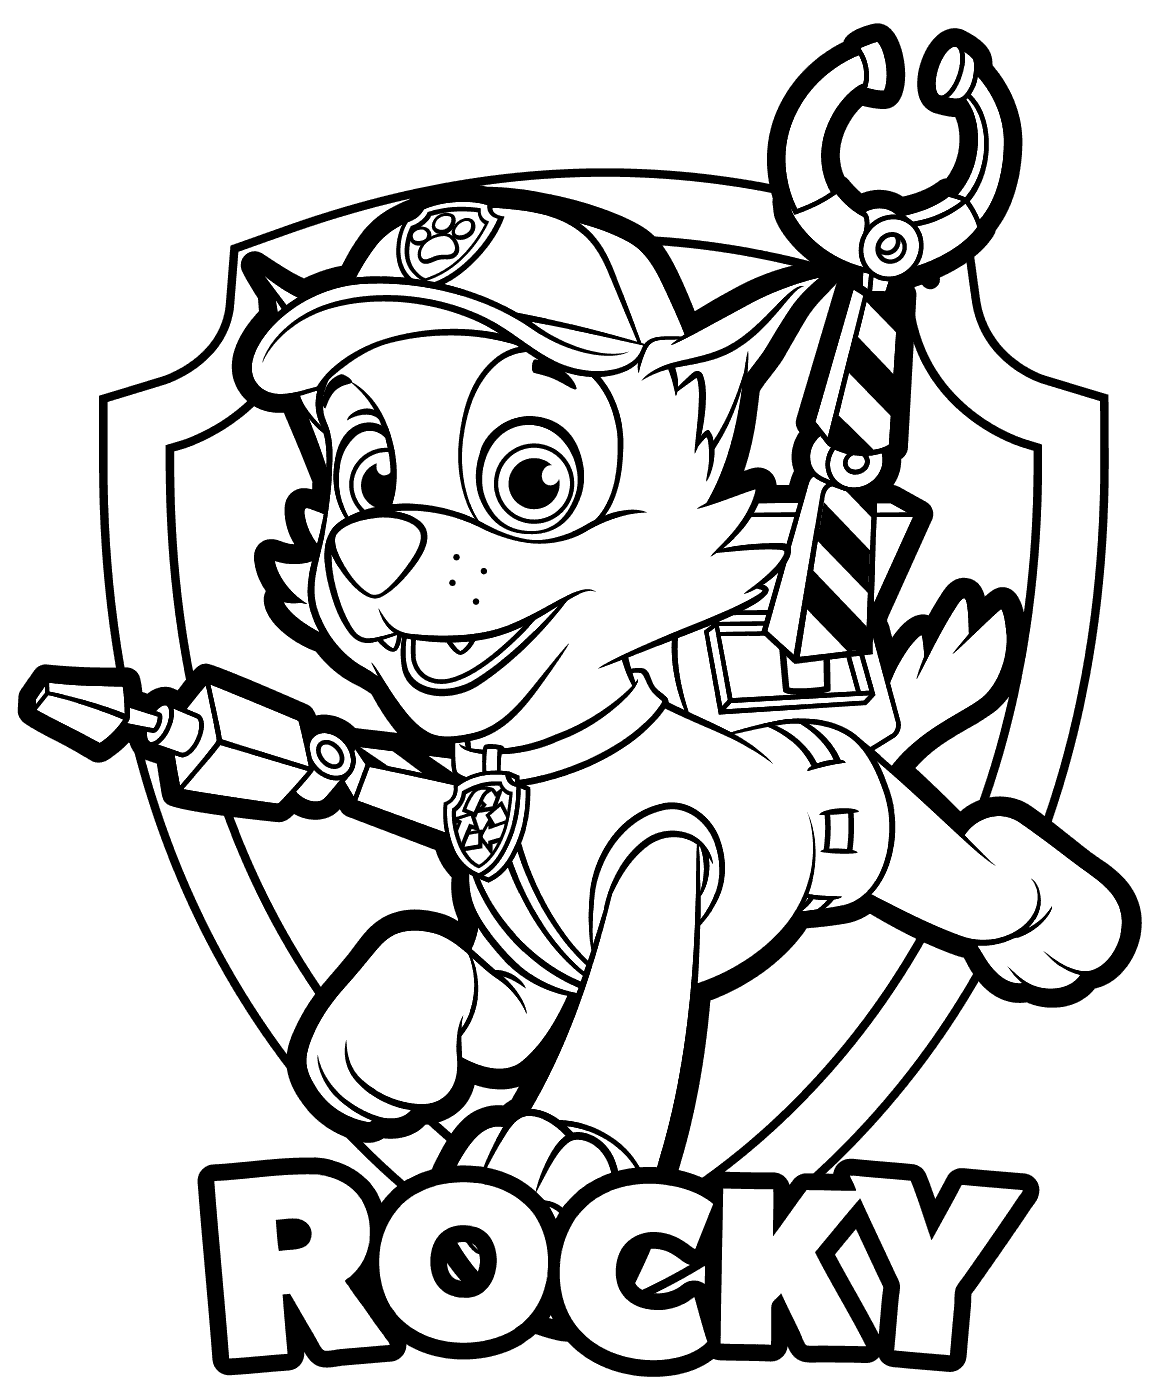 Rocky Coloring Page At Getcolorings